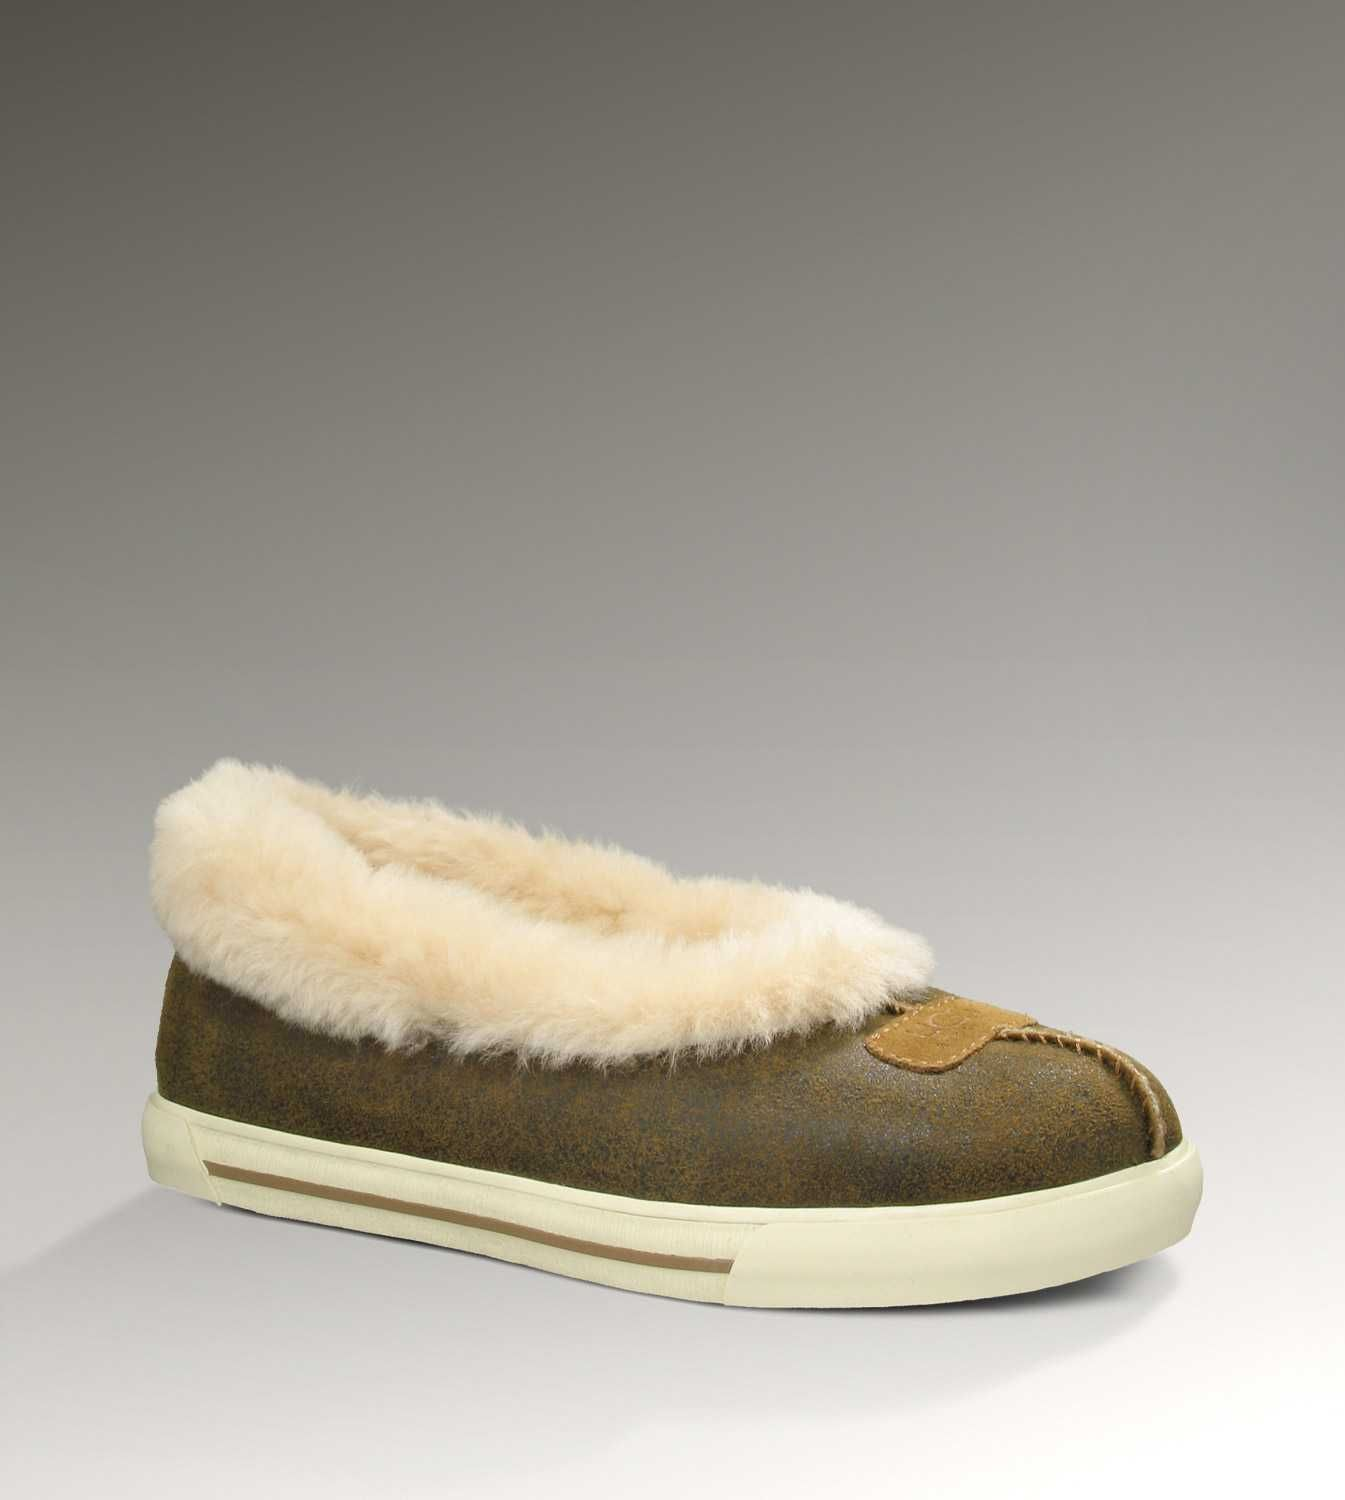 472338a1432 Cheap Uggs Rylan Bomber 3048 Slippers For Women [UGG UK 281 ...